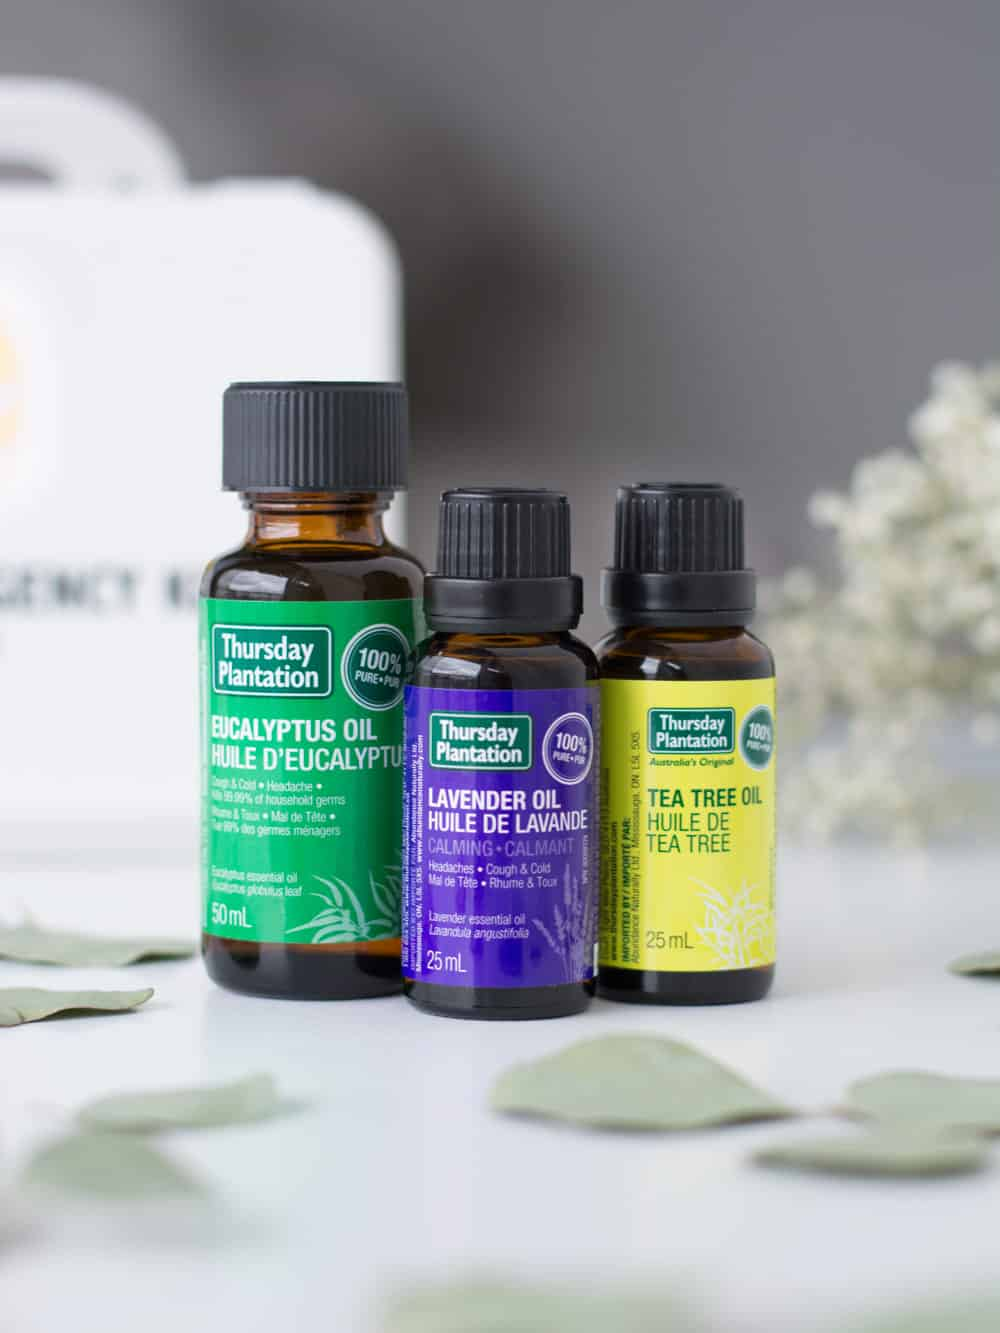 How to use essential oils for better health